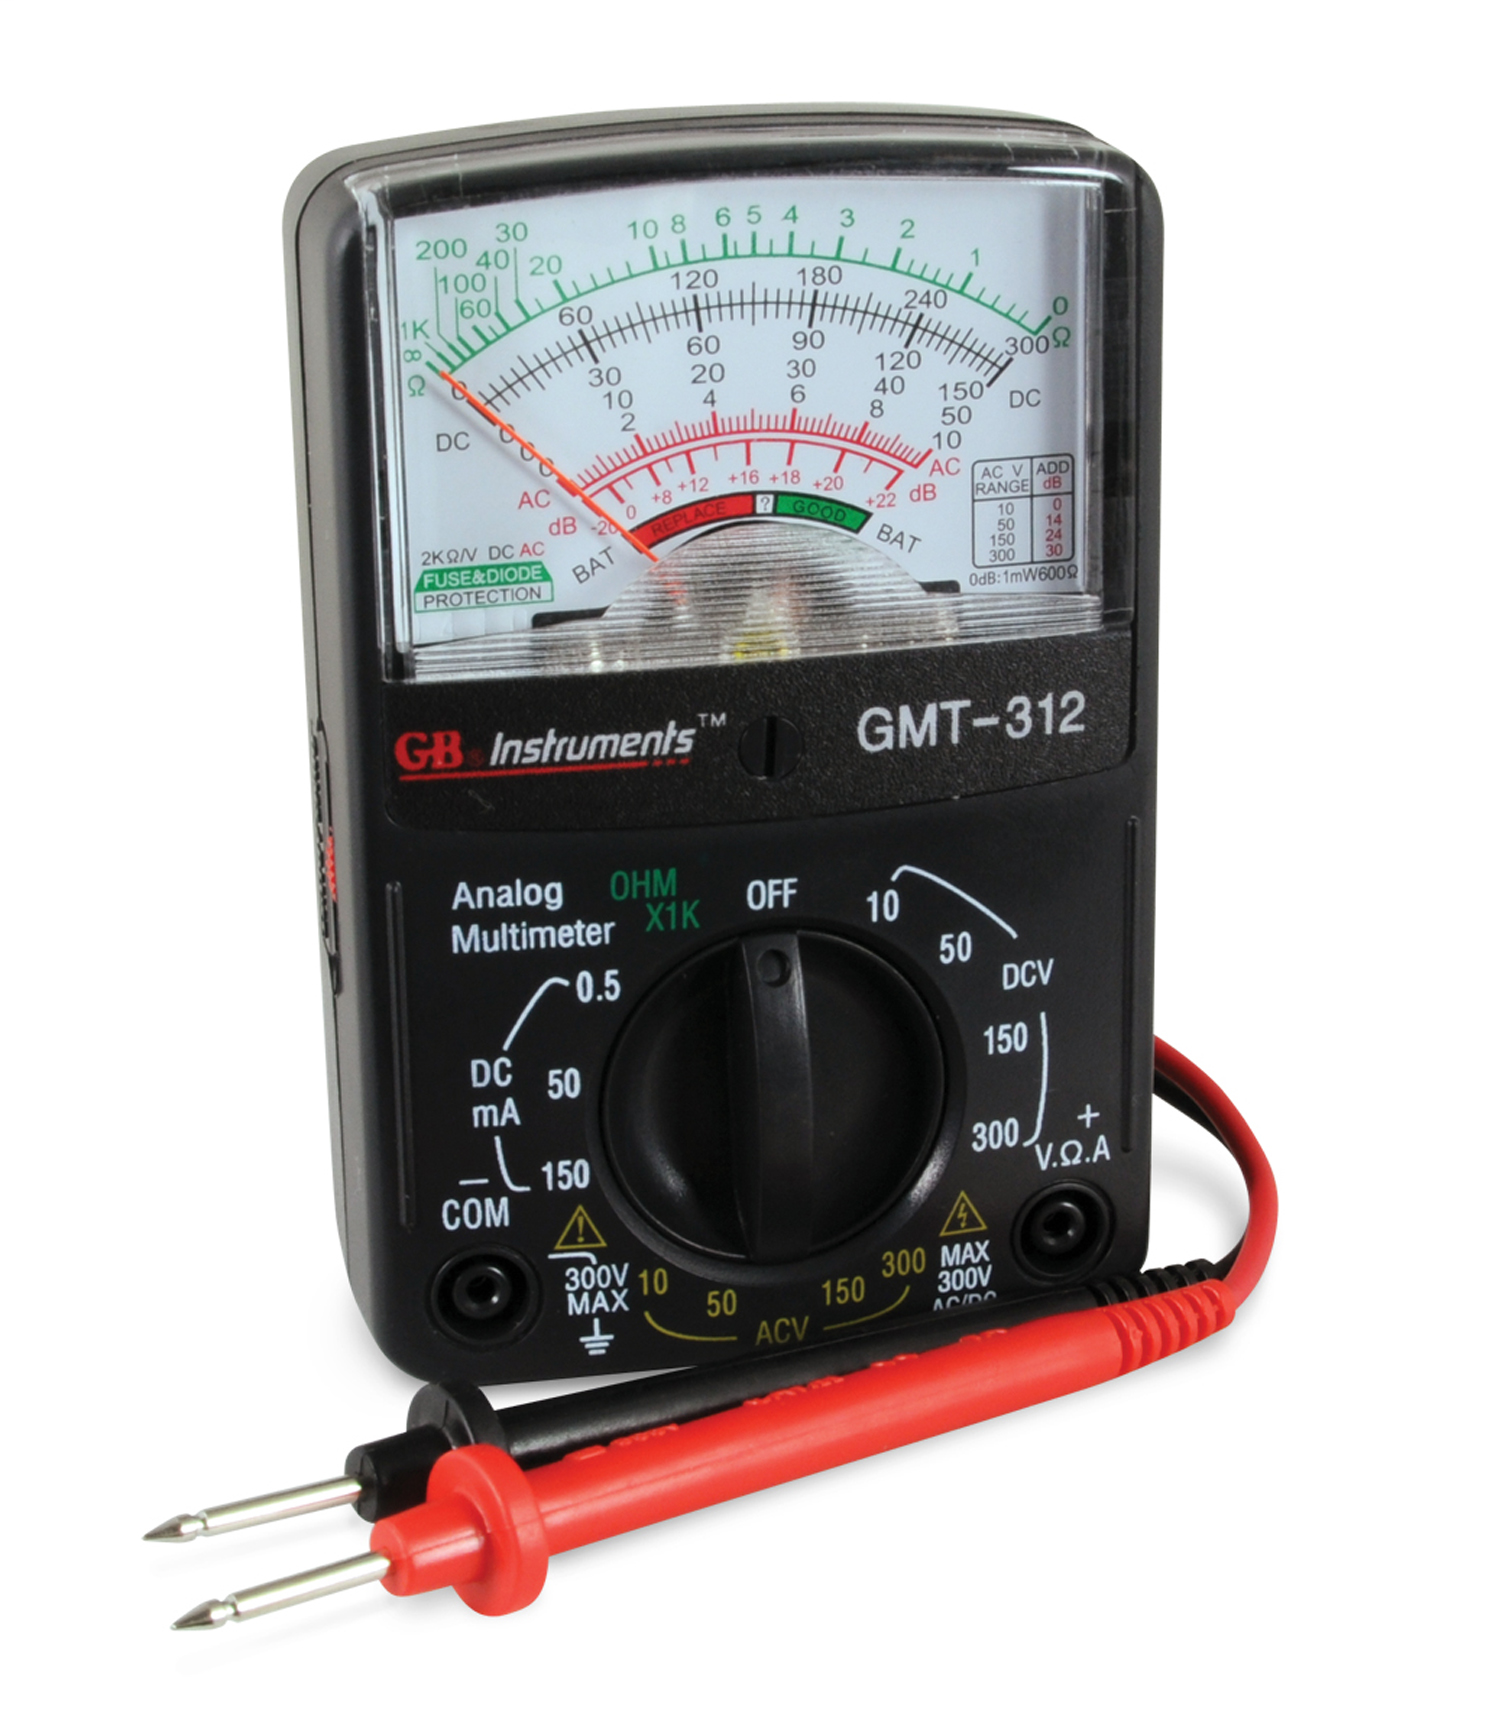 5 Function Analog Multimeter